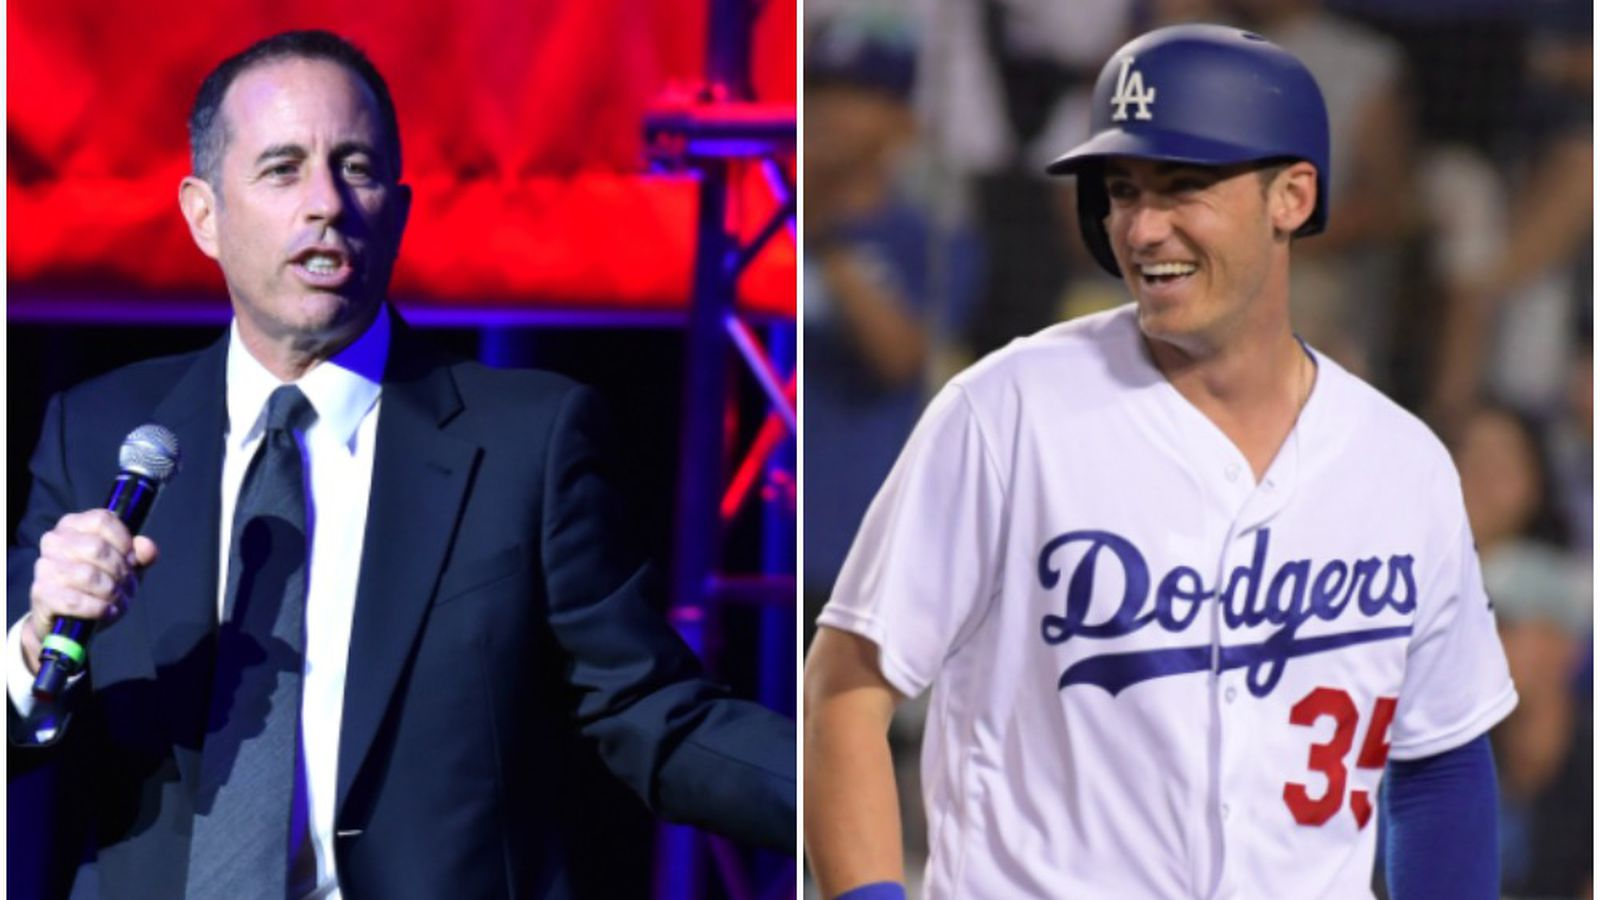 Dodgers' Cody Bellinger admits he doesn't know who Jerry Seinfeld is